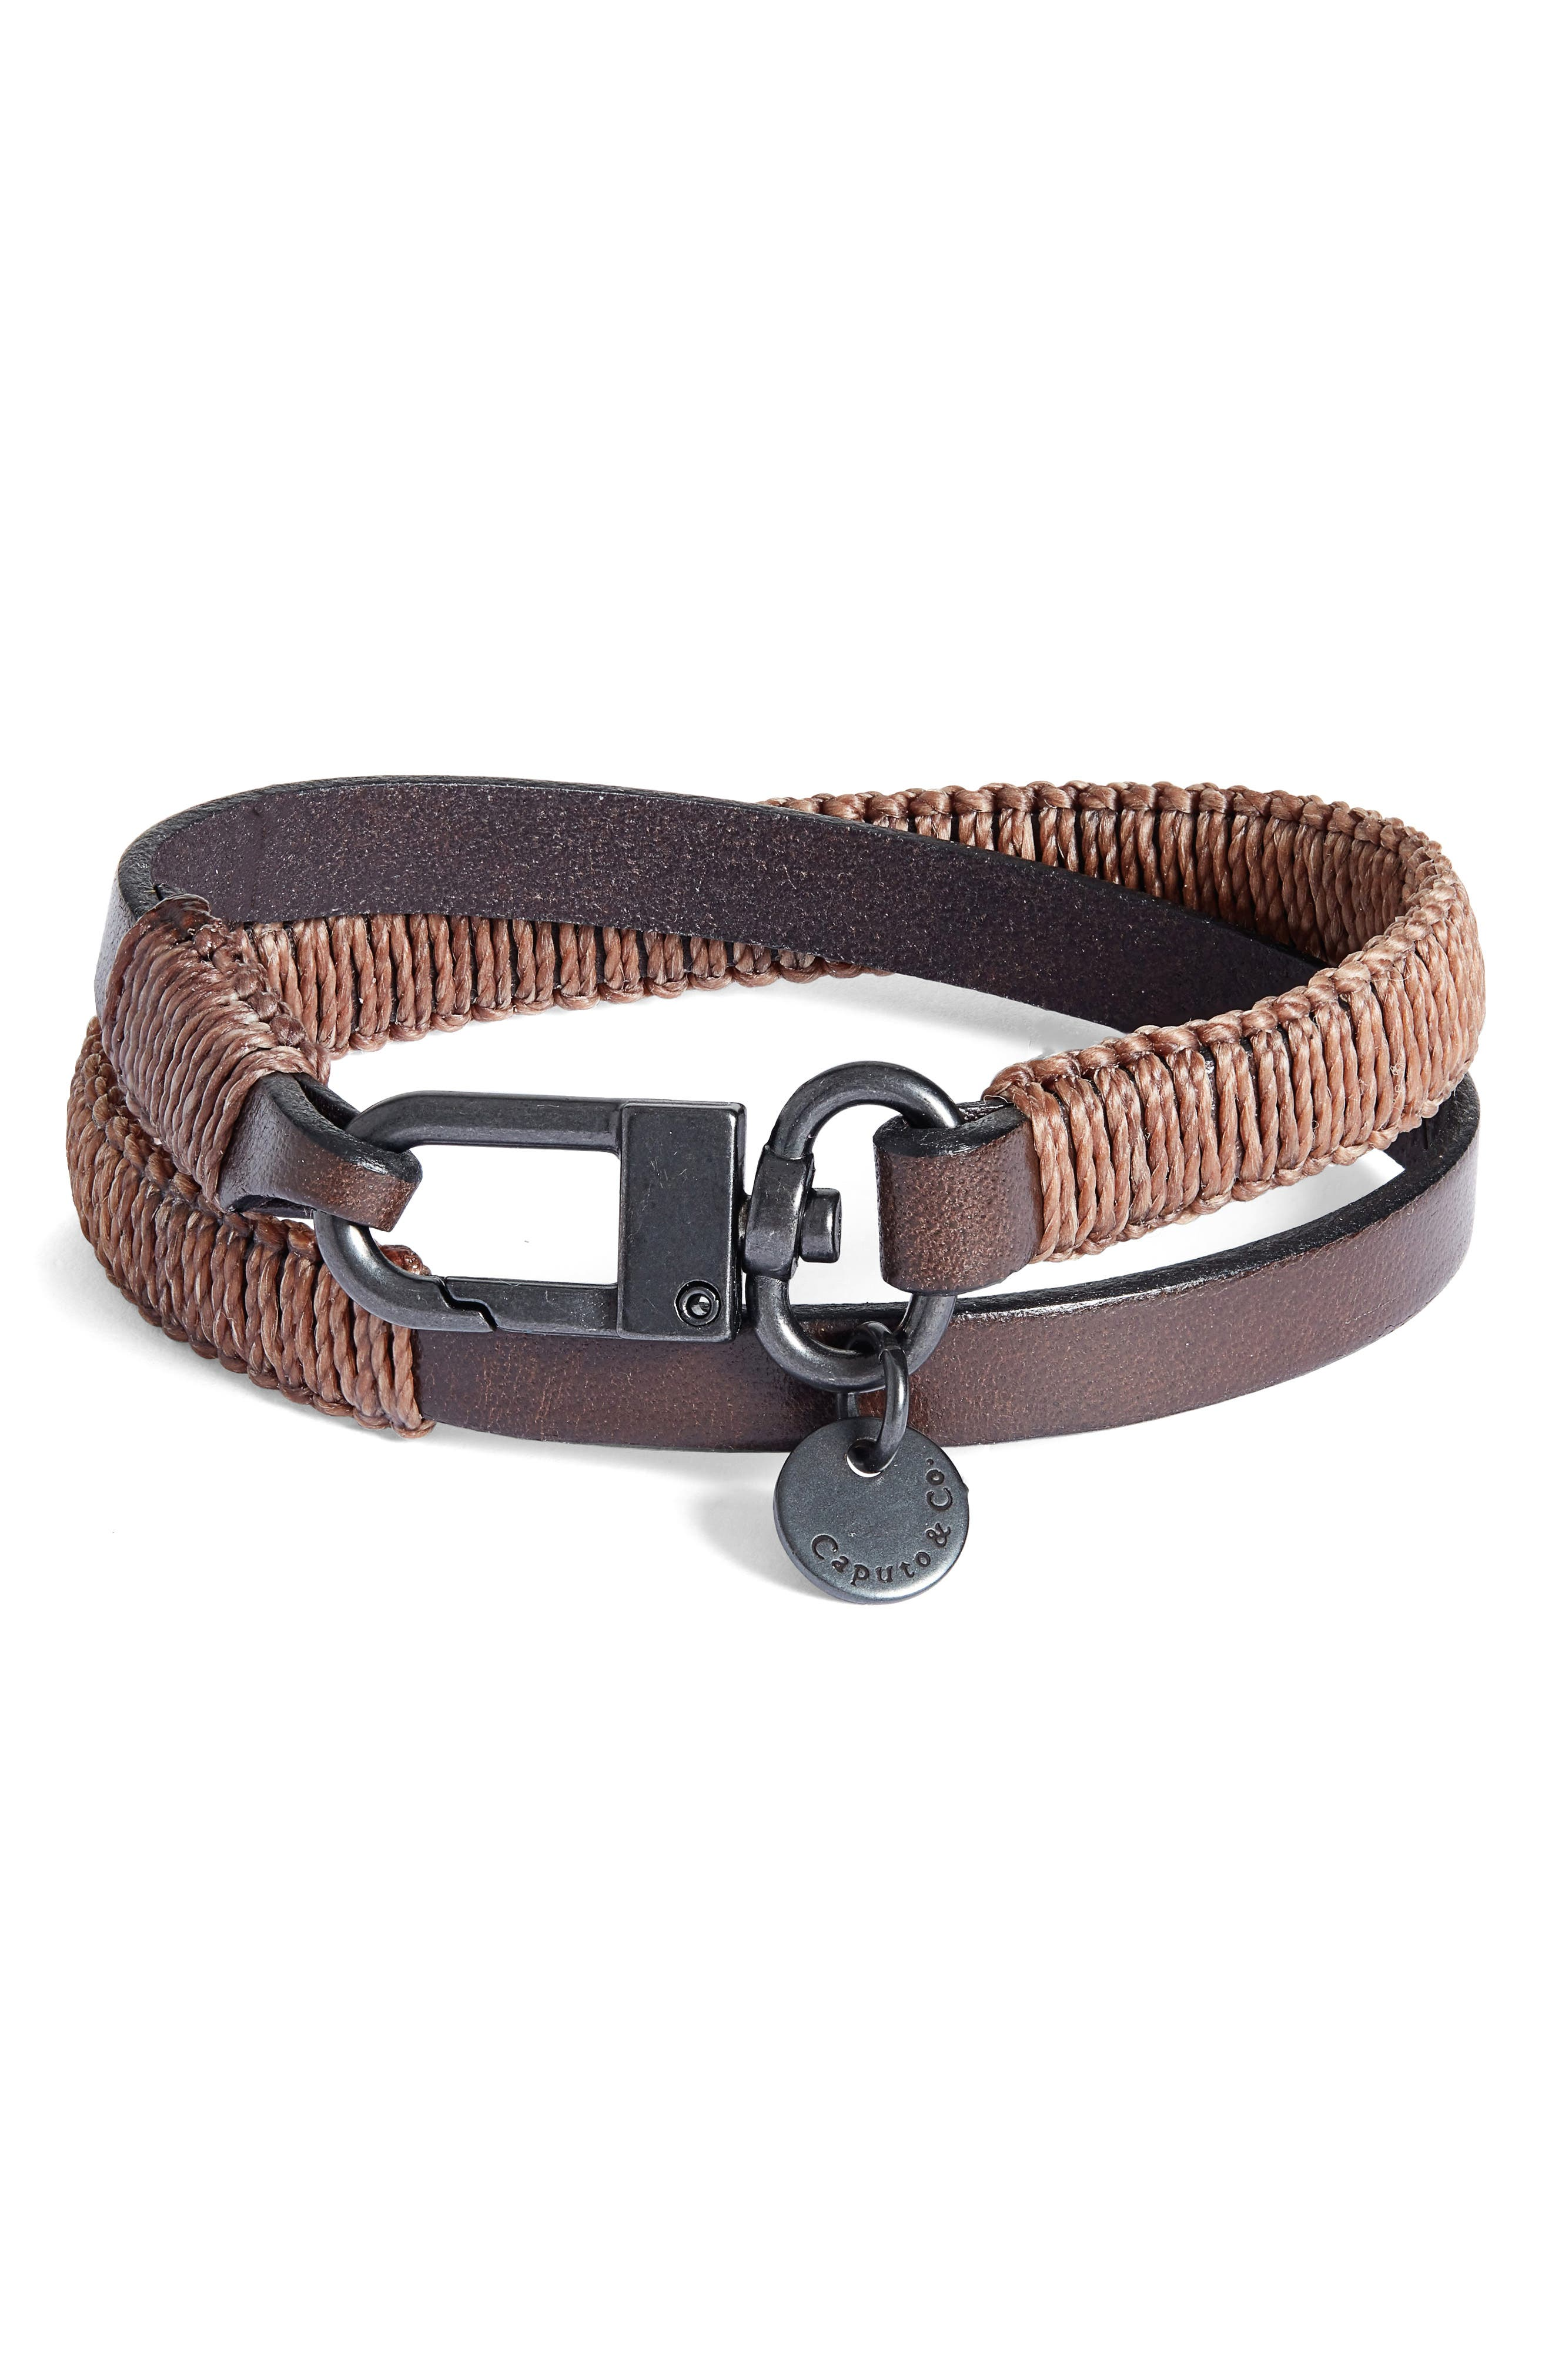 Men's Wide Hand-Knotted Leather Double Wrap Bracelet